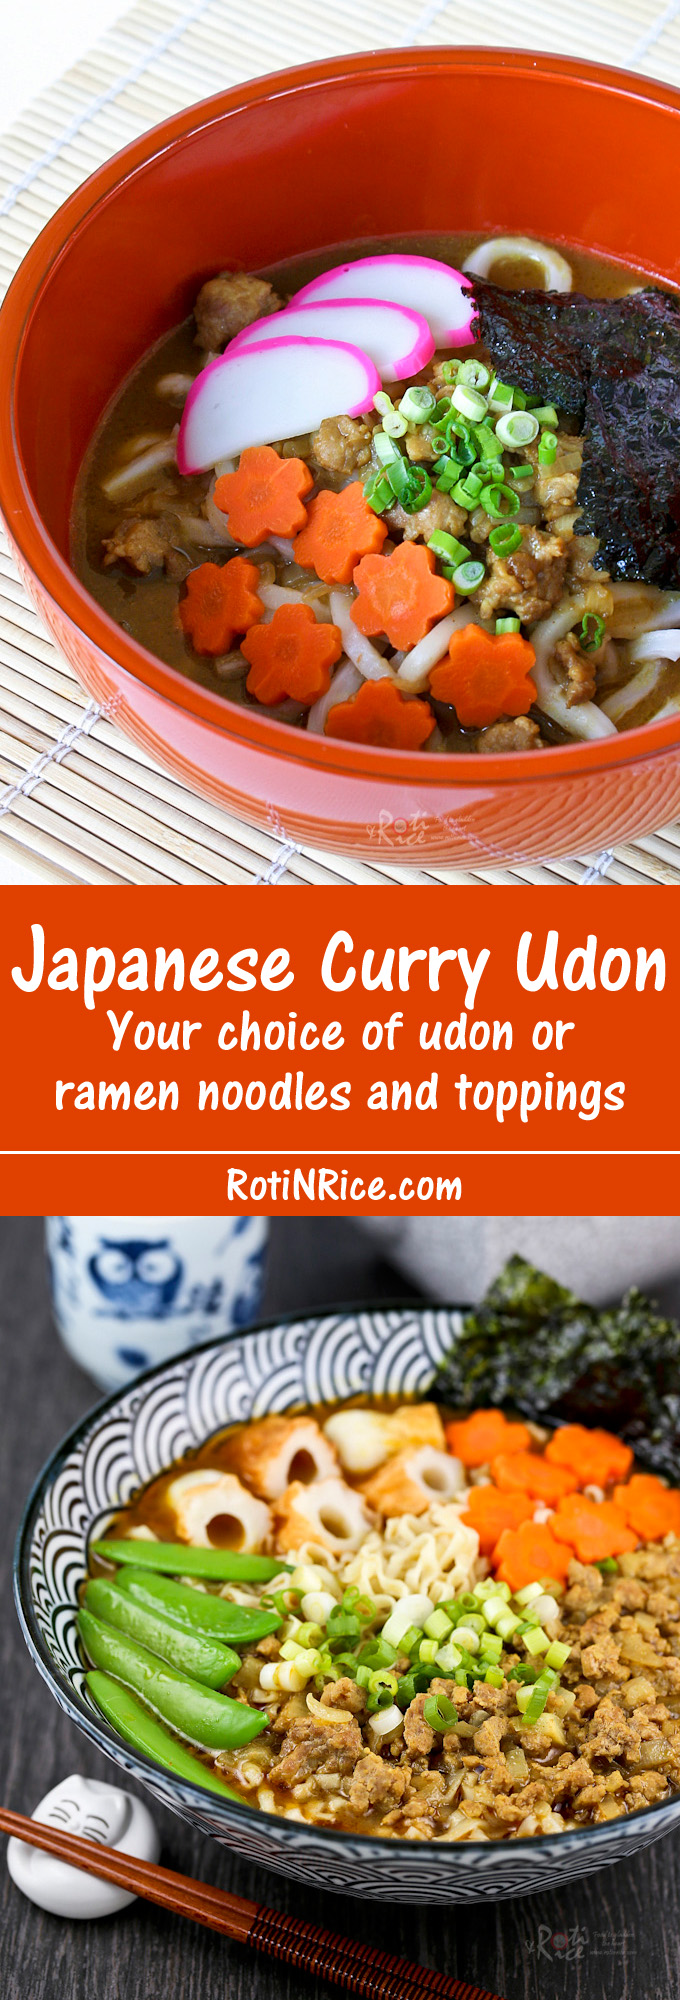 Quick and easy Japanese Curry Udon using convenient pre-packaged curry sauce mix. Your choice of udon or ramen noodles and toppings. | Food to gladden the heart at RotiNRice.com